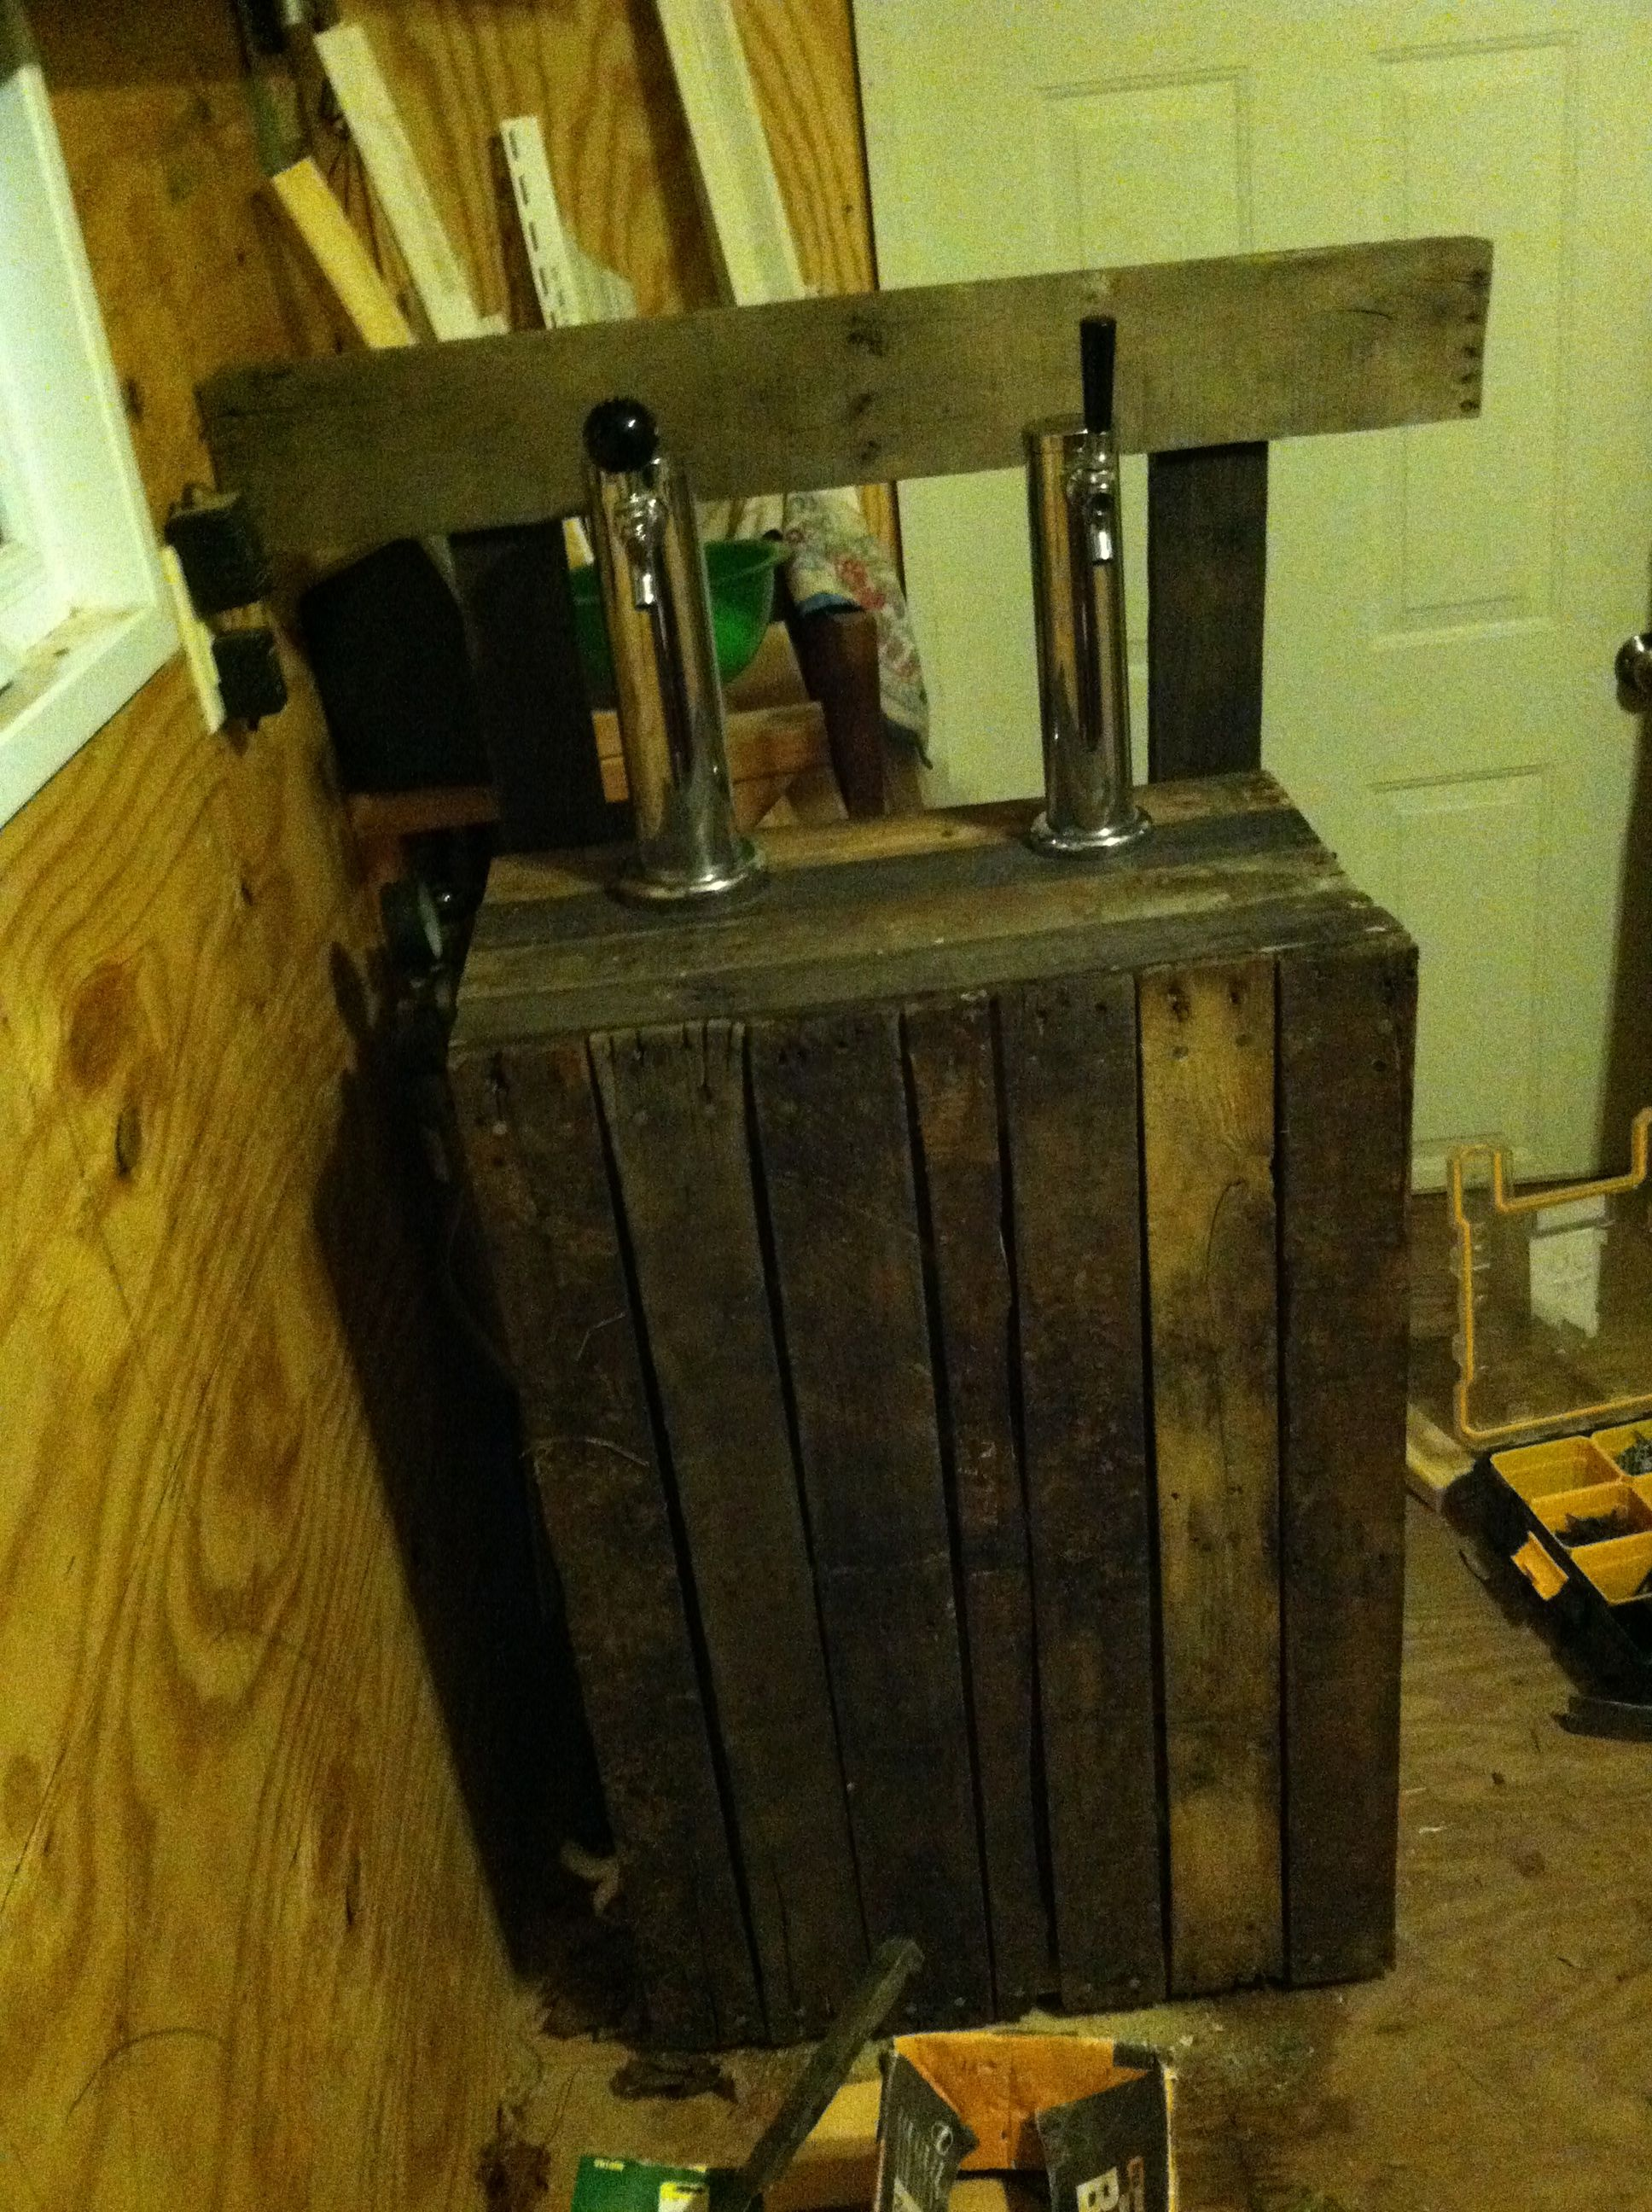 Kegerator update and first pallet wood project